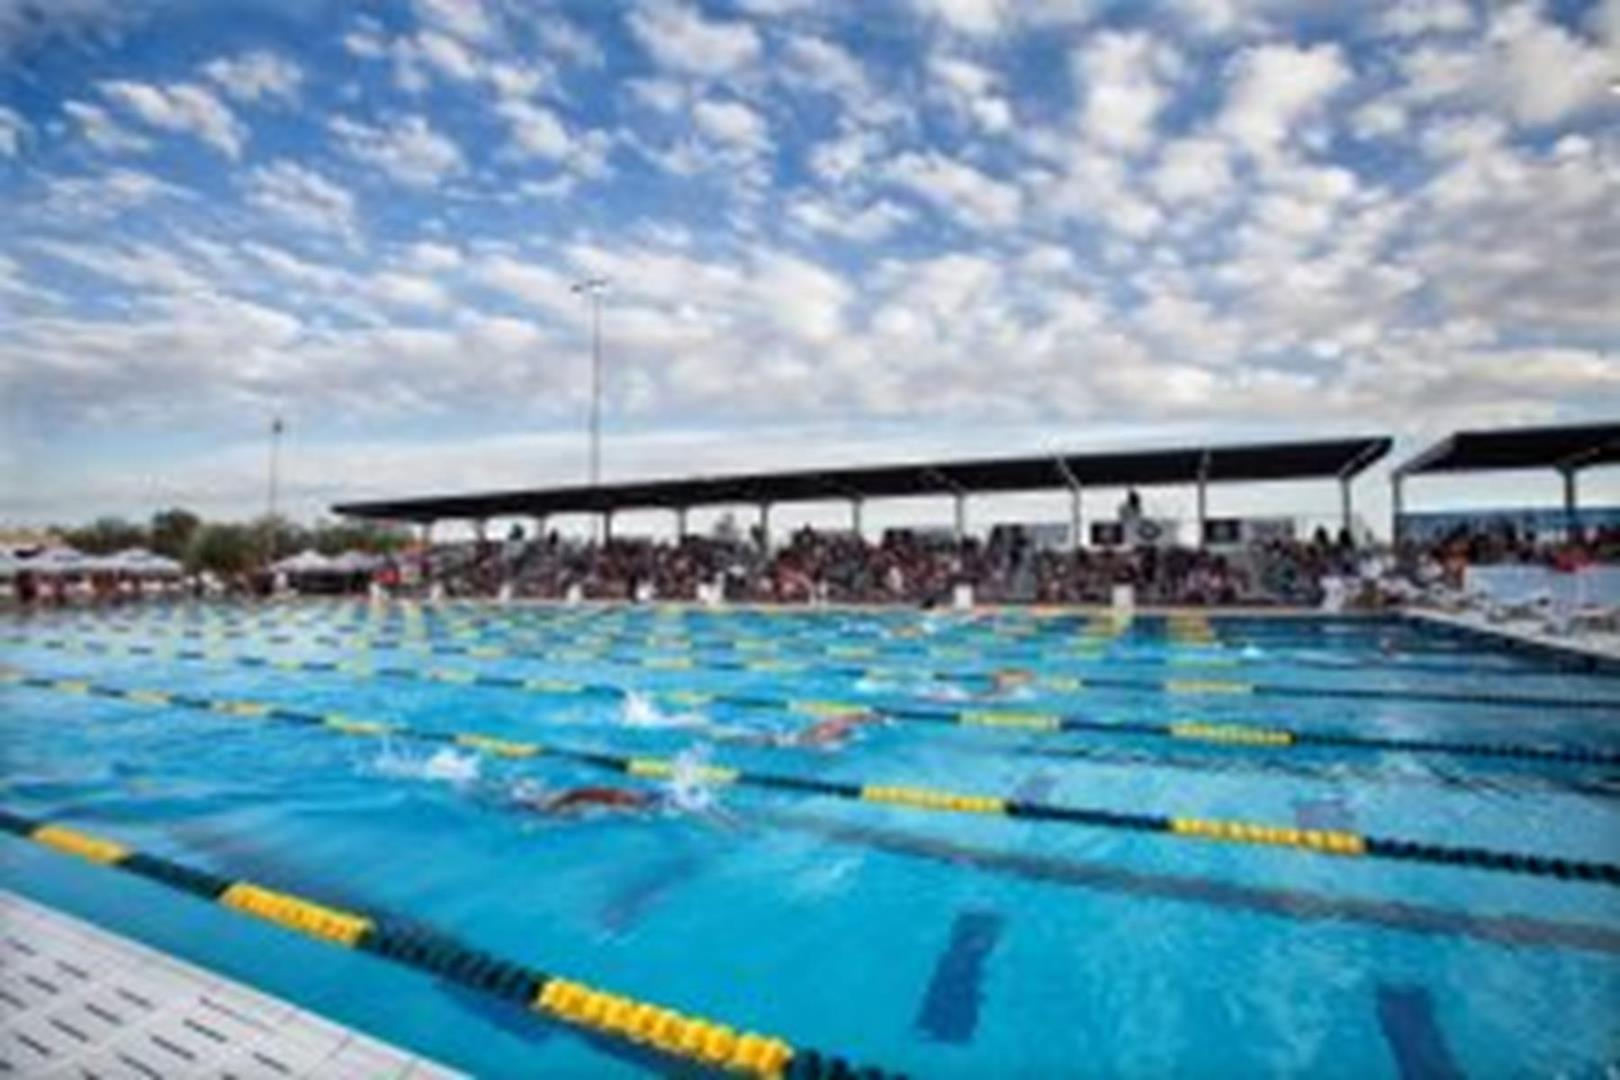 Grand Prix Skyline Aquatic Center